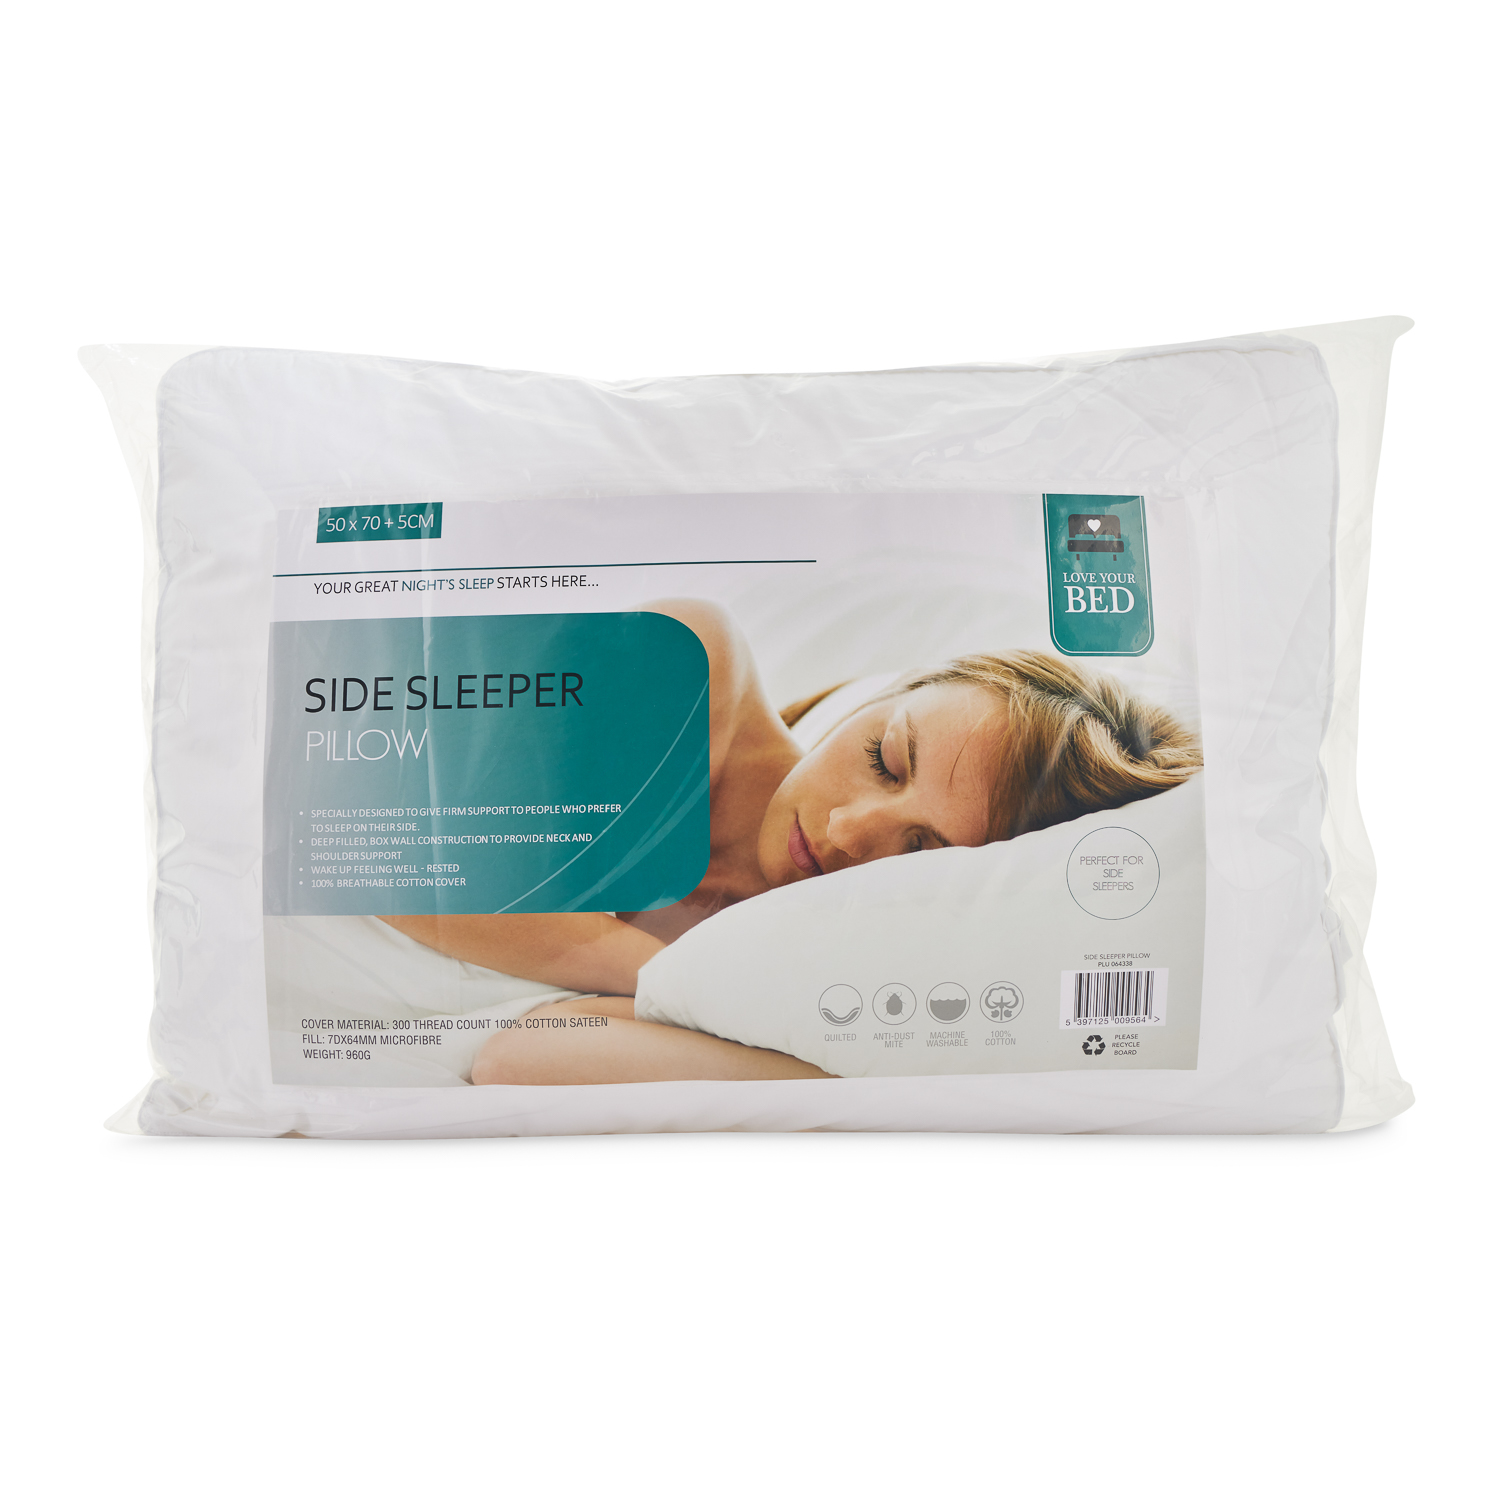 belily lilly en nursingpillow categories lily sidesleeperpillow sleeper pillow match filling bead beat pillows side or s feeding to nursing